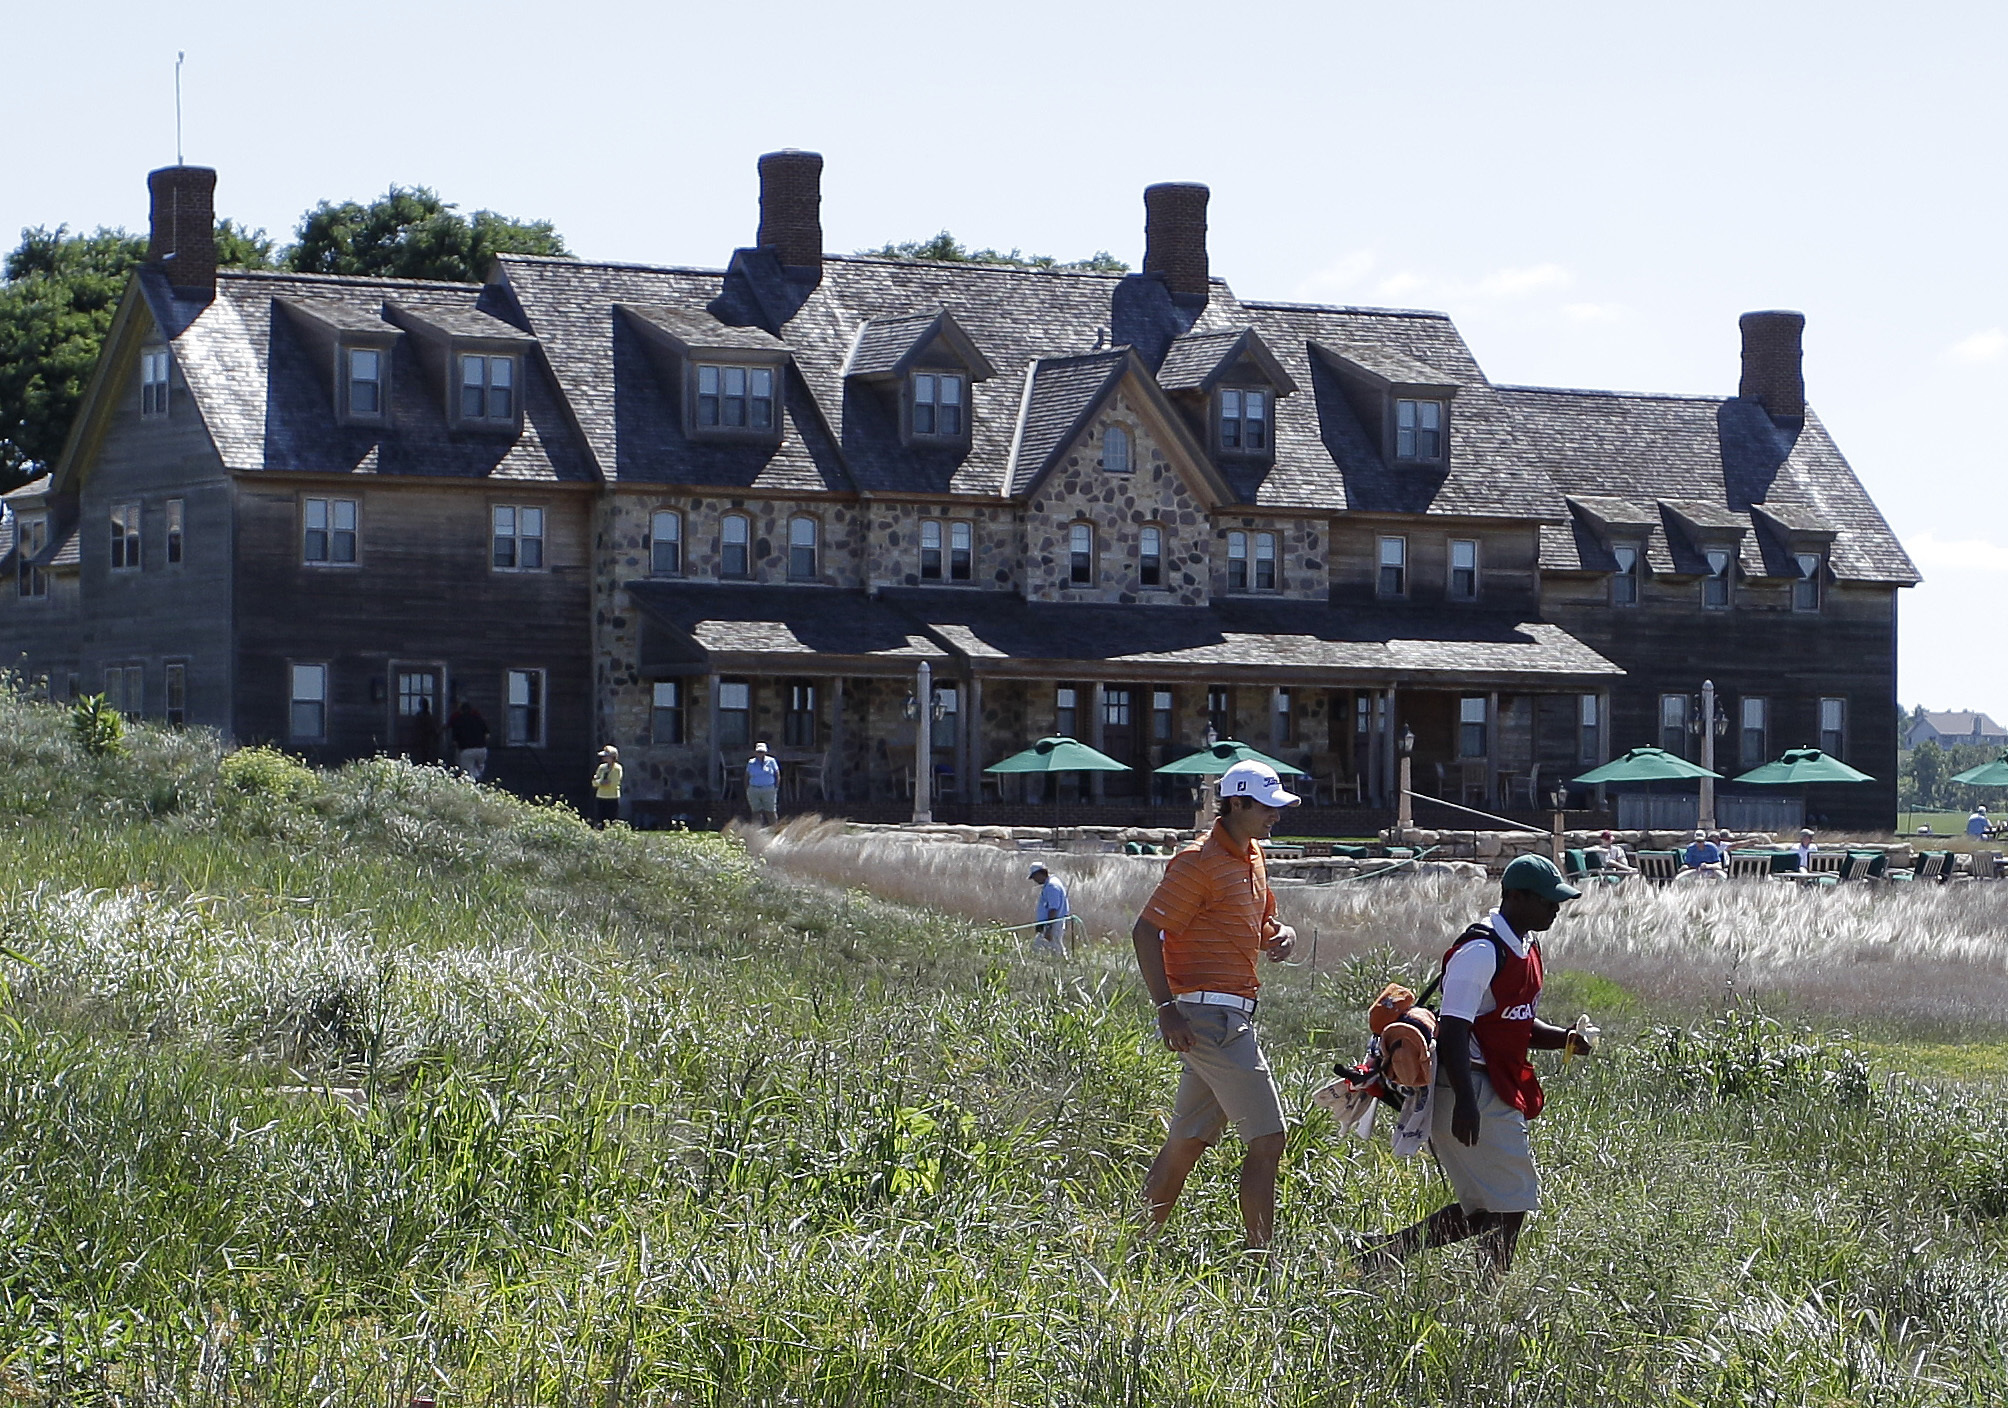 FILE - In this Aug. 25, 2011, file photo, Peter Uihlein of Orlando, Fla., makes his way up the first fairway during the second round of match play at the U.S. Amateur golf tournament at Erin Hills Golf Course in Erin, Wisc. Erin Hills, in the middle of Wi